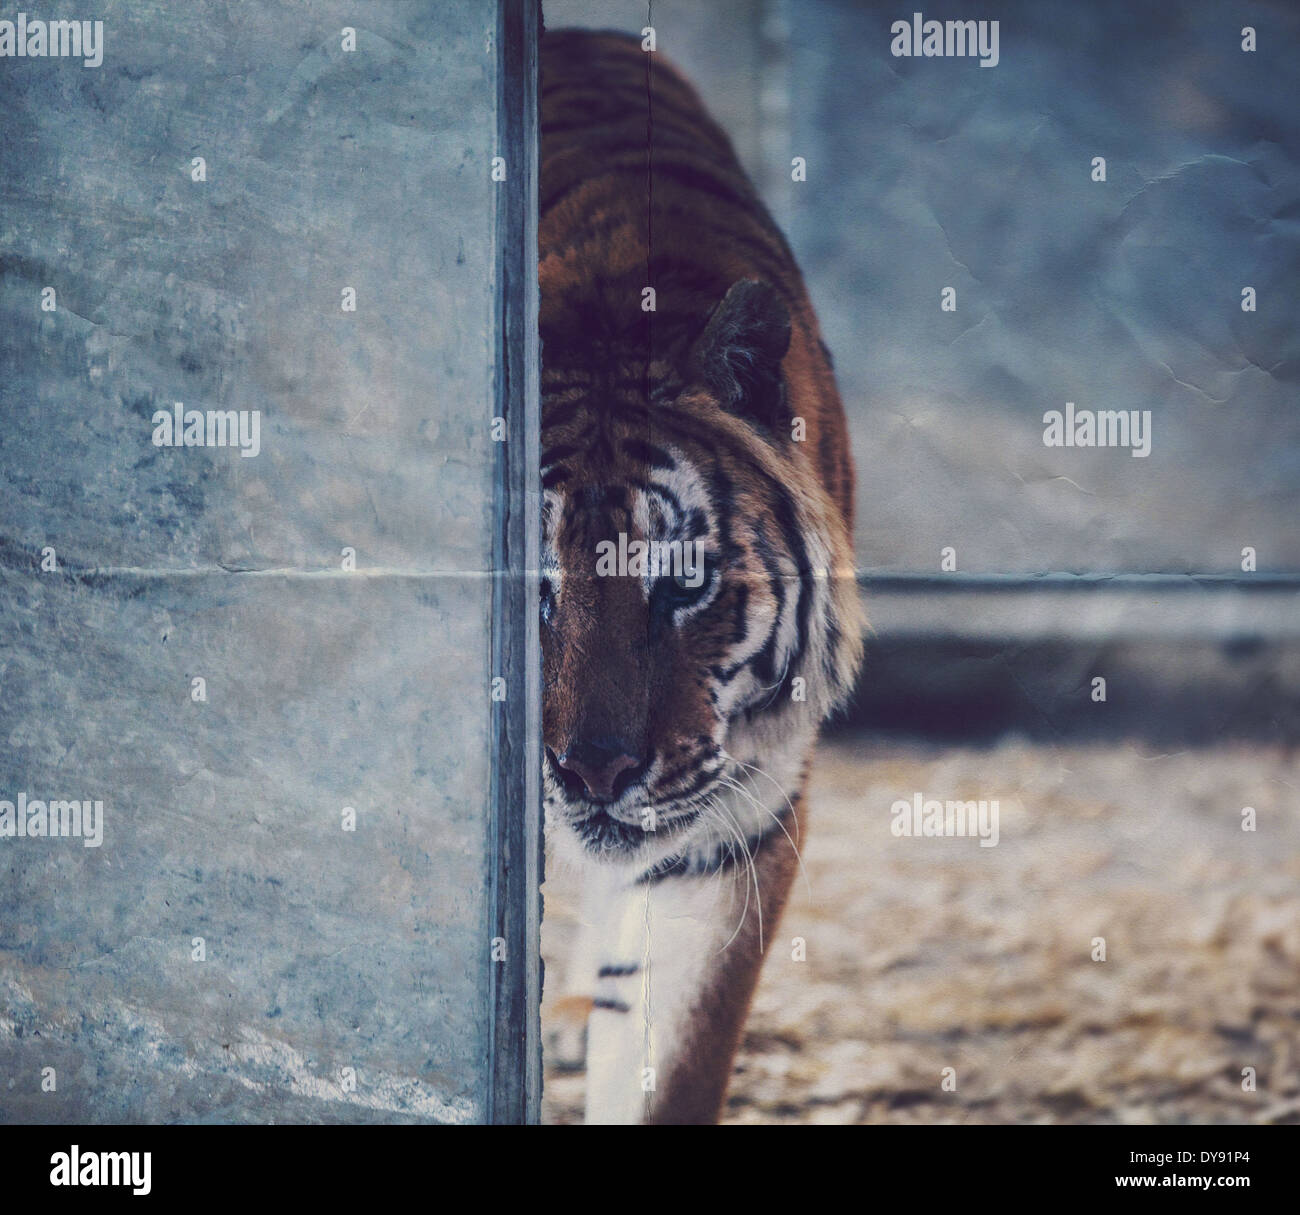 Paper Tiger Stock Photos & Paper Tiger Stock Images - Alamy